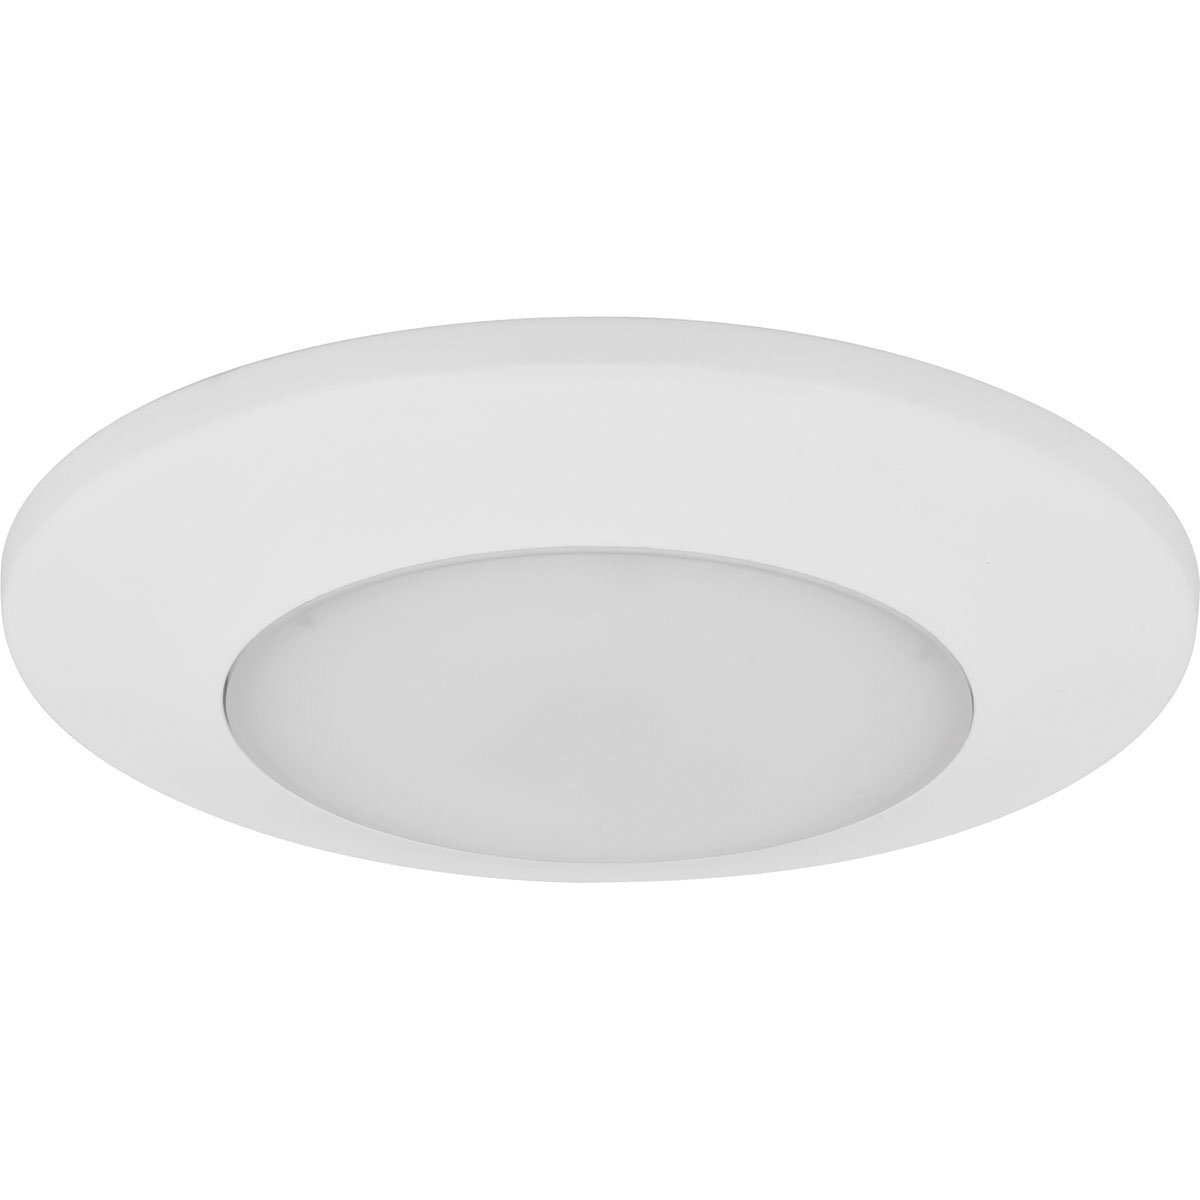 Progress Lighting P8022-28/30K9-AC1-L10 IC/Non-IC Close-To-Ceiling LED Fixture 1-Light White